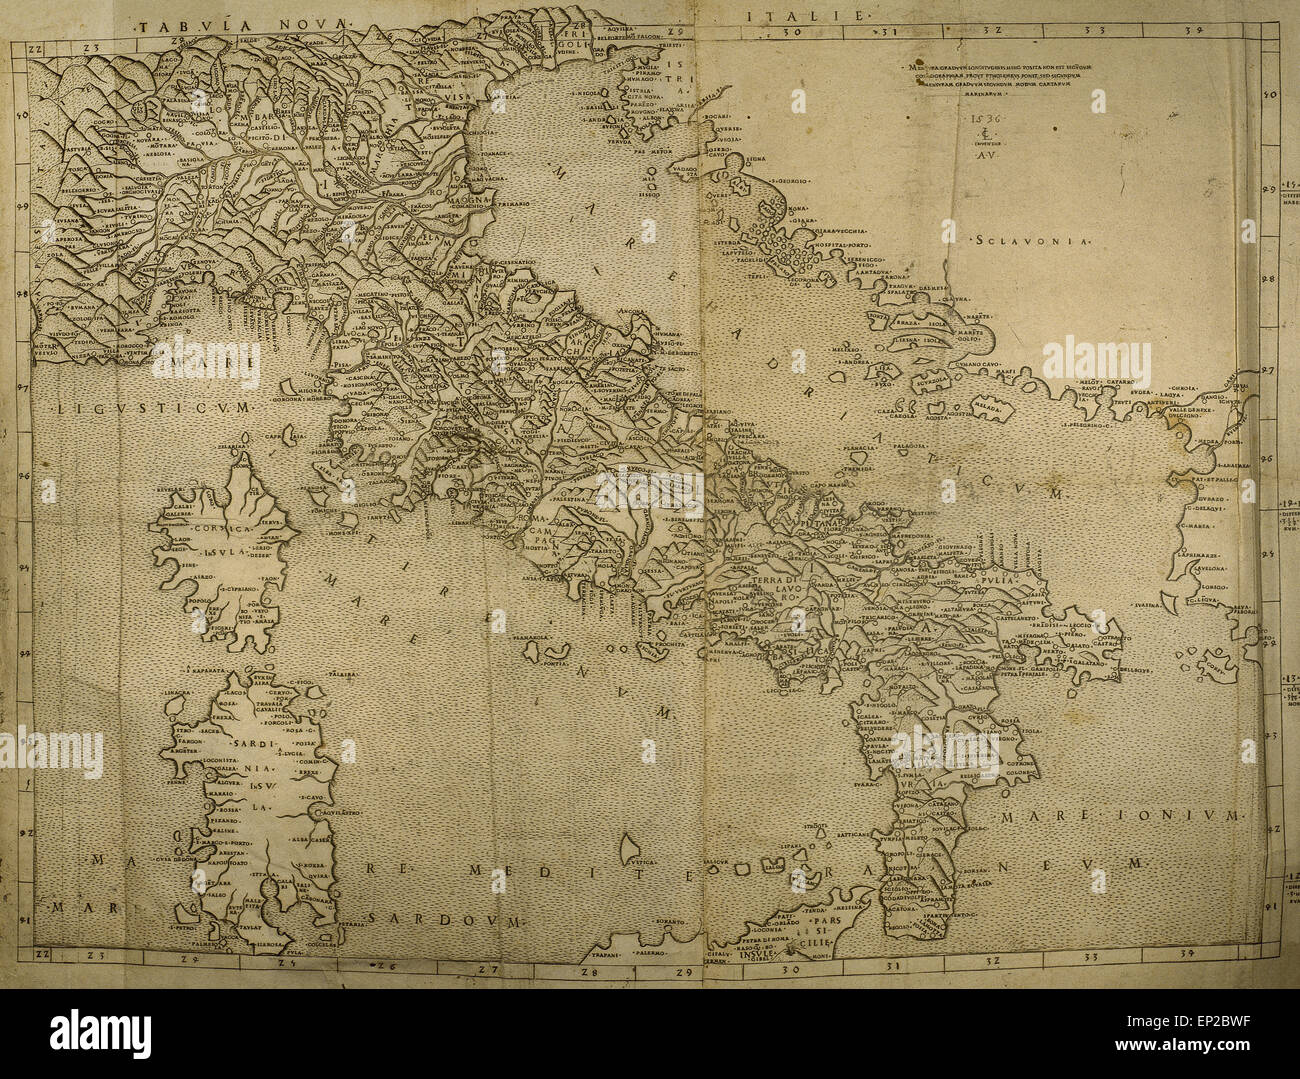 Map of Italian Peninsula, Islands of Corsica and Sardinia and Adriatic coast. Engraving. 16th century. - Stock Image